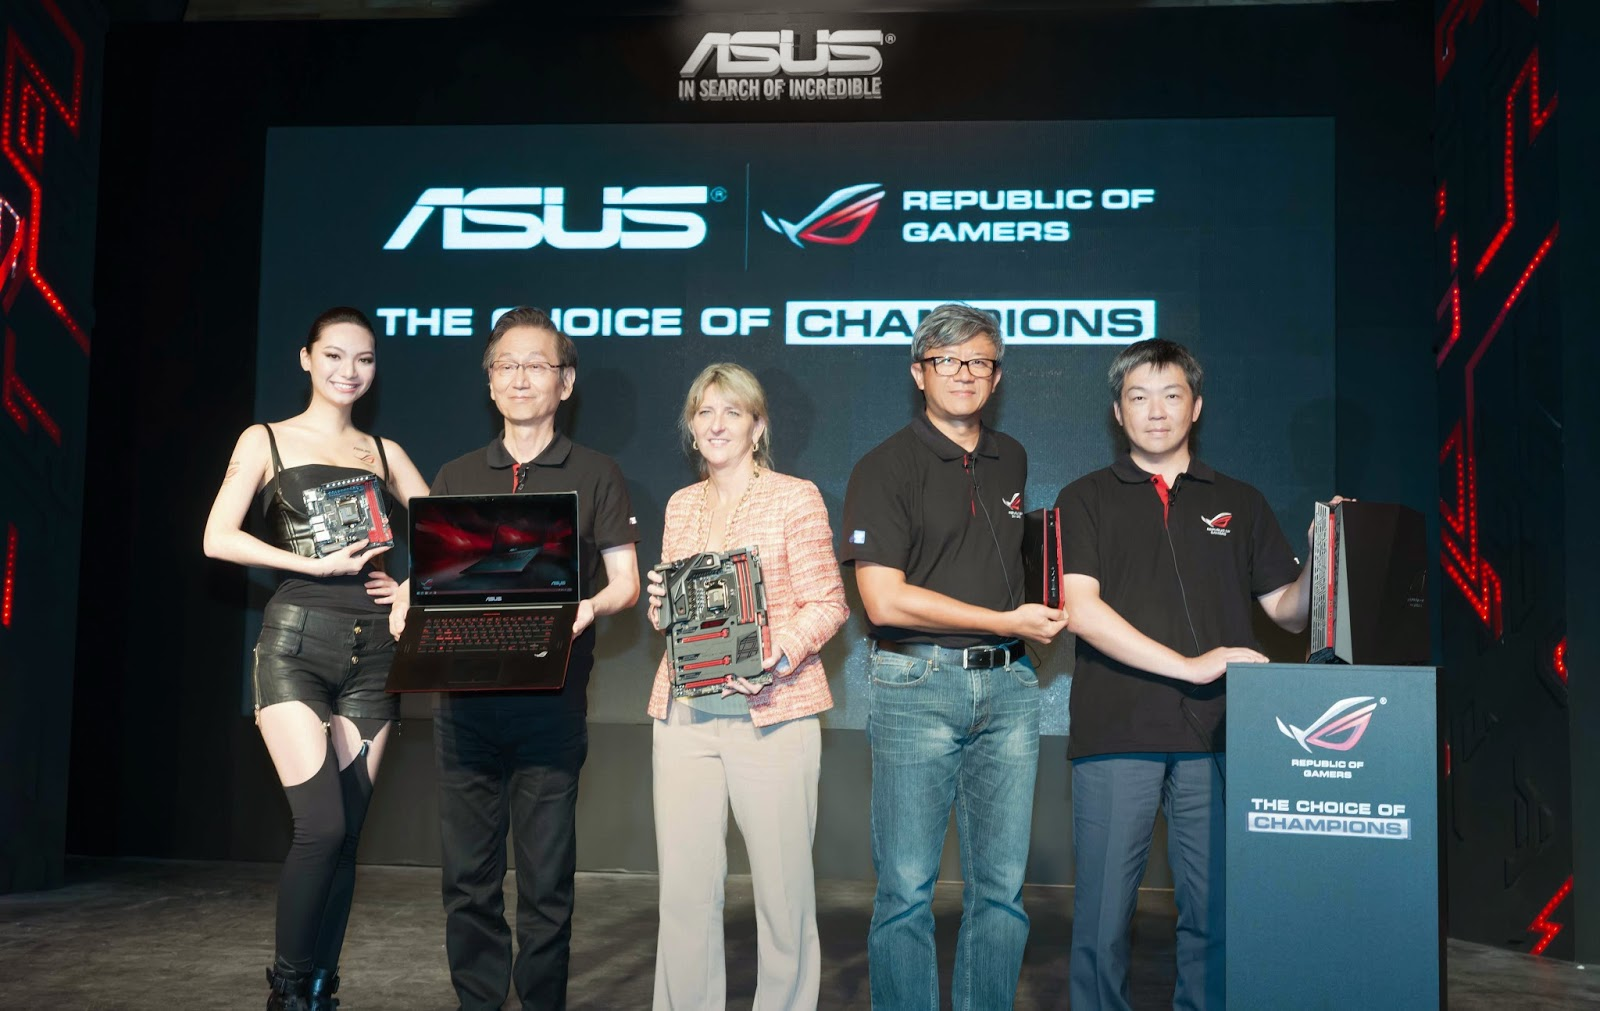 ASUS Republic of Gamers Launches Epic Gaming Equipment at Computex 2014 1